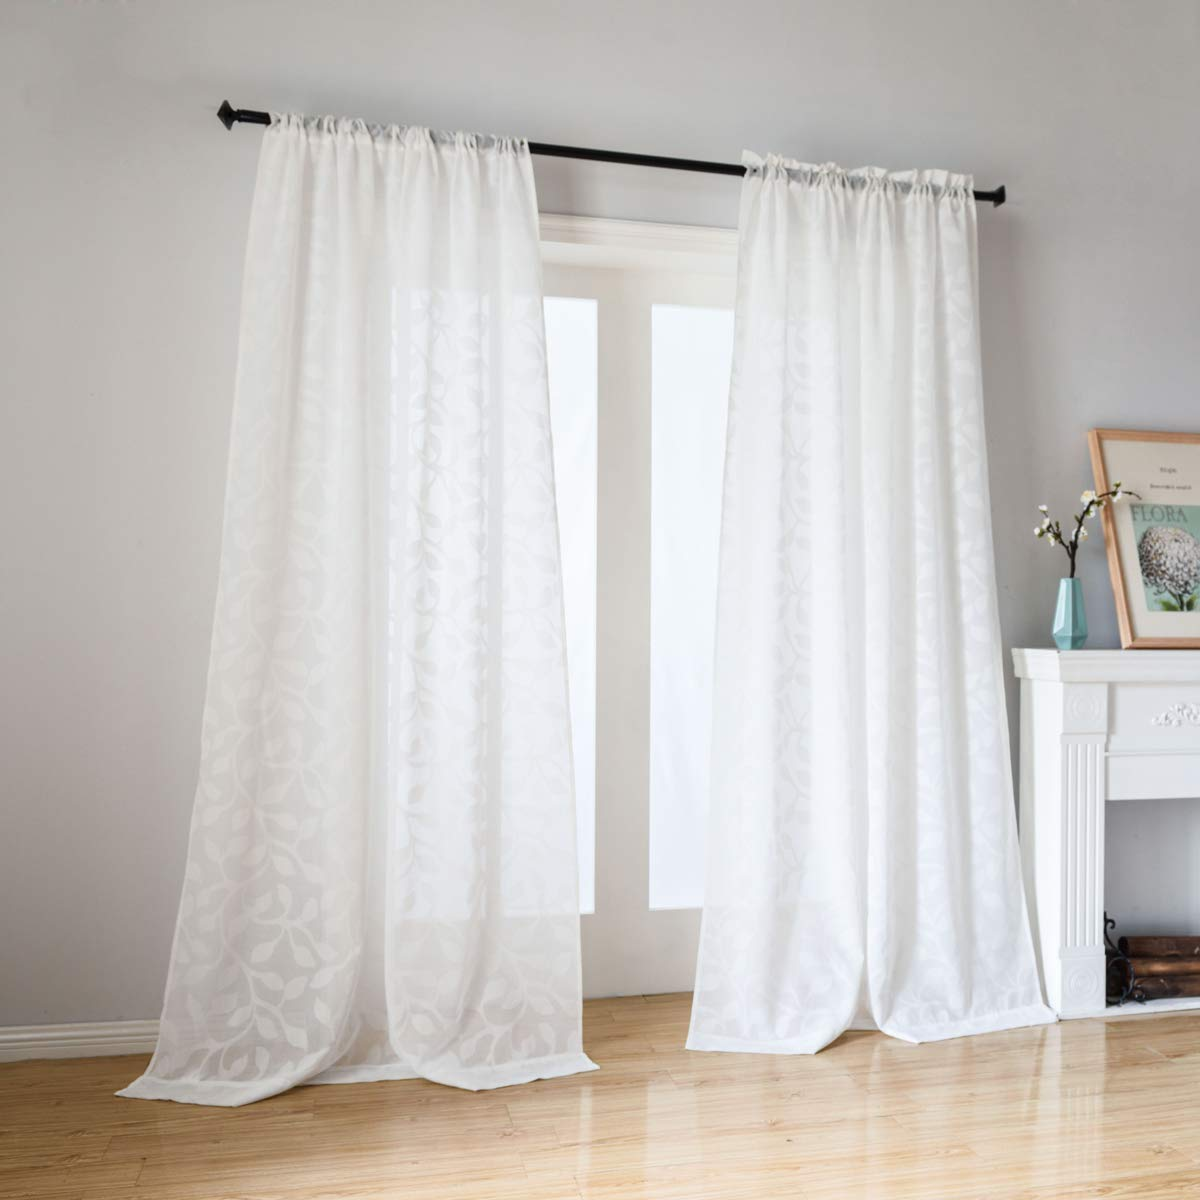 Taisier Home Countryside Style Leave Sheer Curtains Panels Rod Pockets 95 Inch Length for Glass Door Living Room and Bedroom(Off White,2 Panels) by Taisier Home